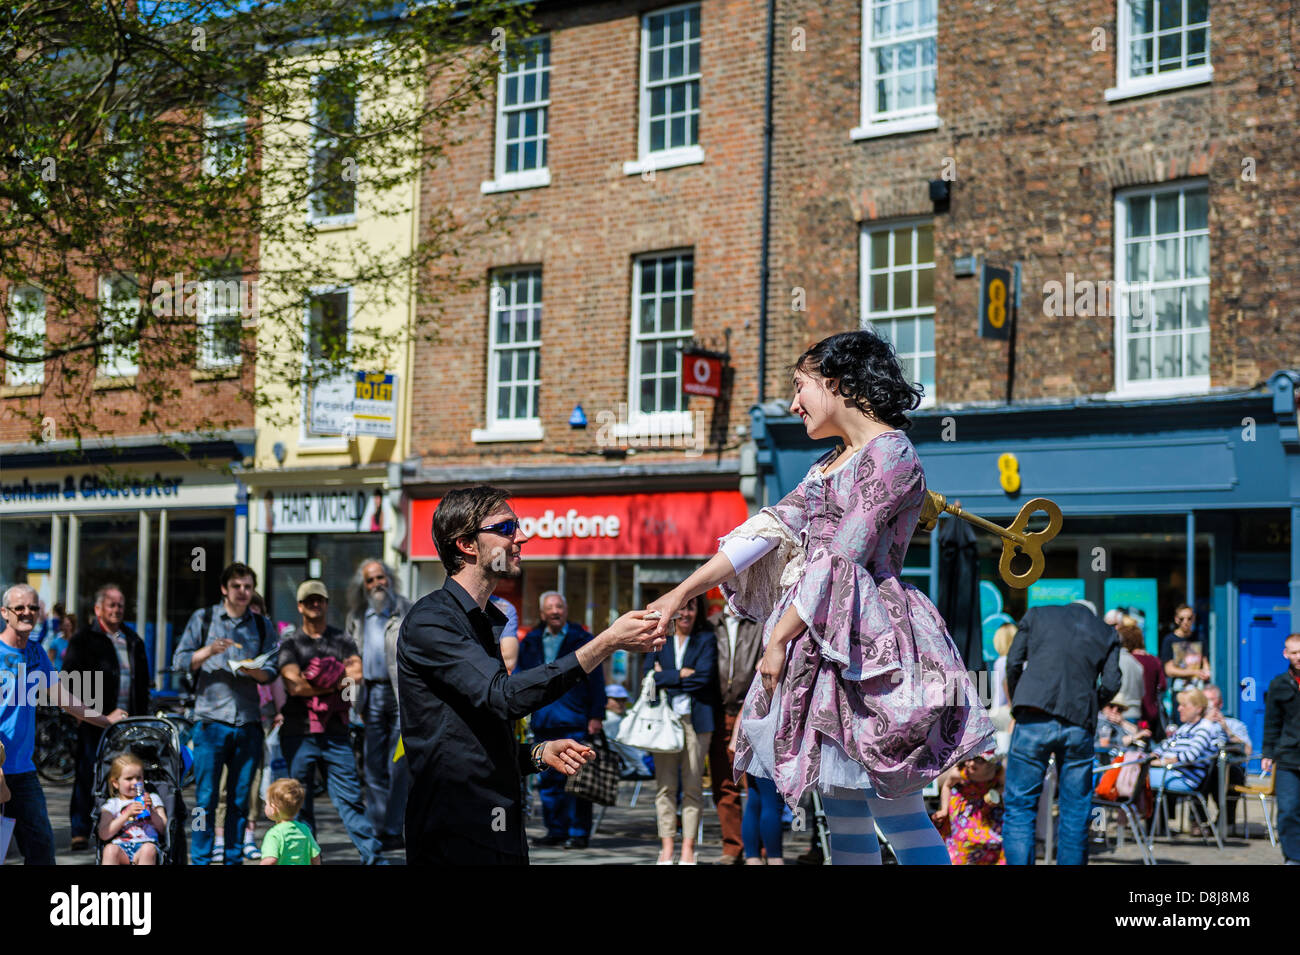 Imitating a clockwork music box dancer, Kate Mior interacts with a young man in her audience during the 2013 York - Stock Image